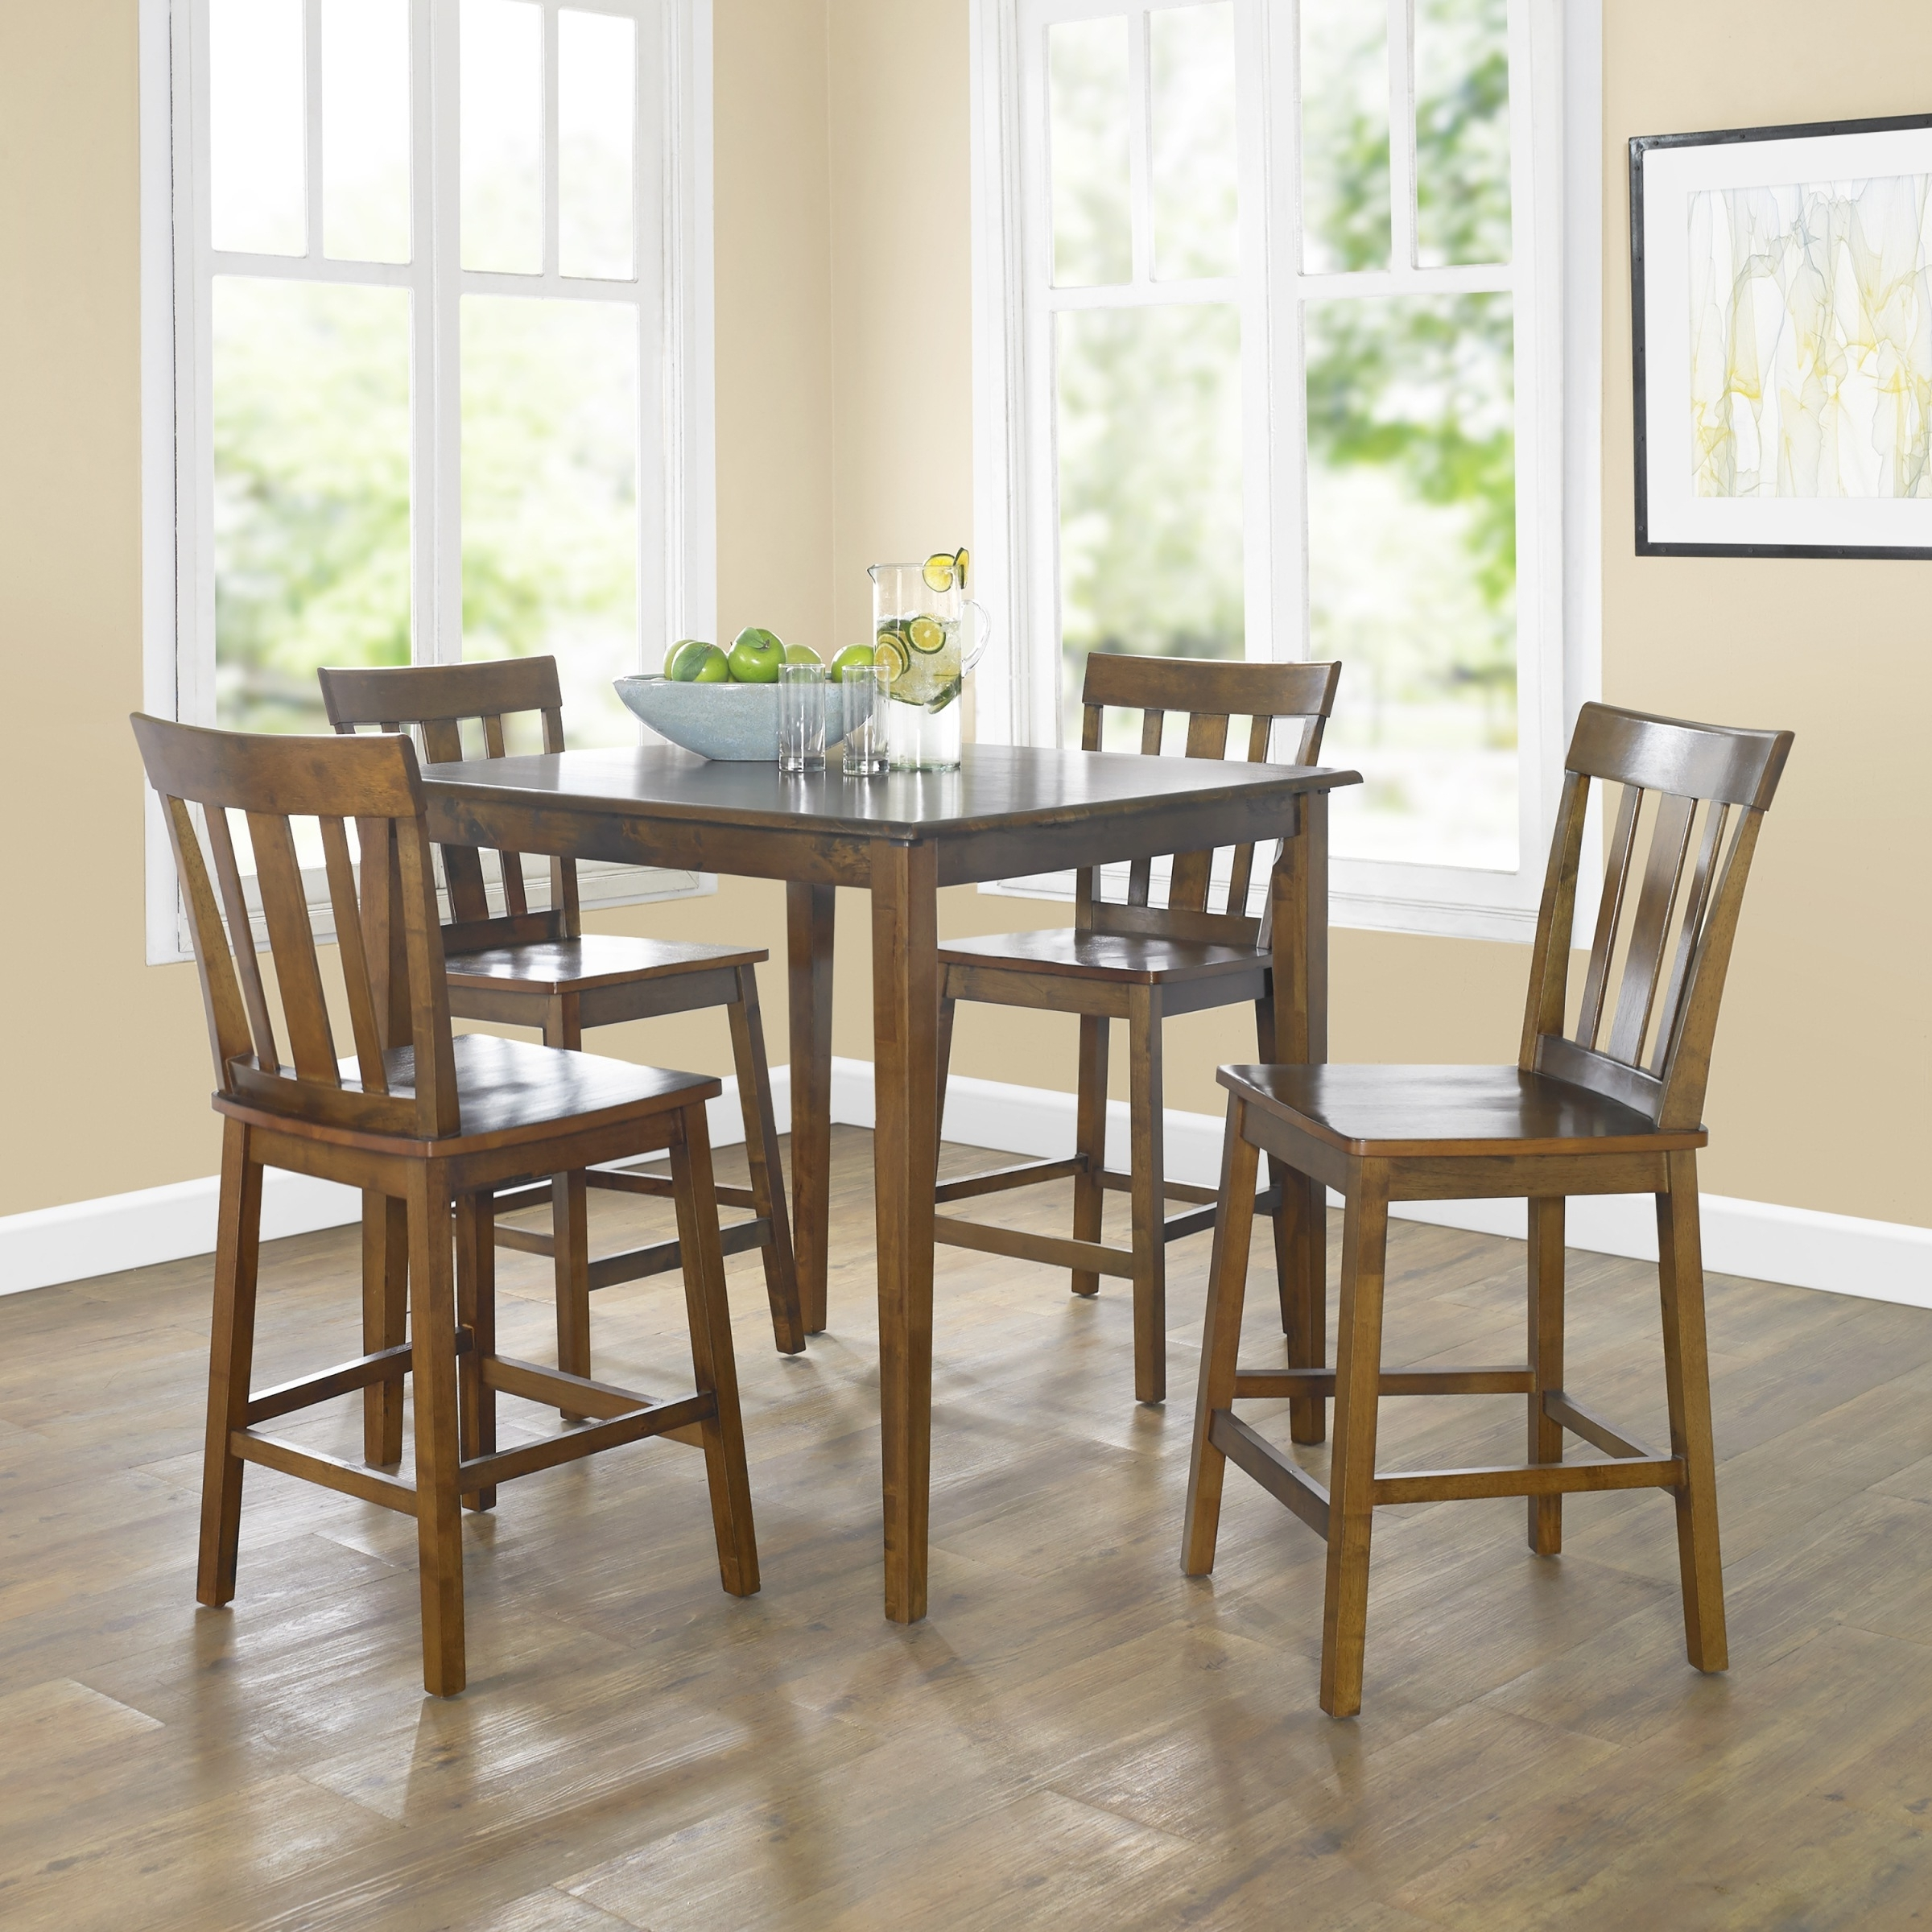 Mainstays 5 Piece Mission Counter Height Dining Set – Walmart Inside Best And Newest Laurent 7 Piece Rectangle Dining Sets With Wood Chairs (View 25 of 25)